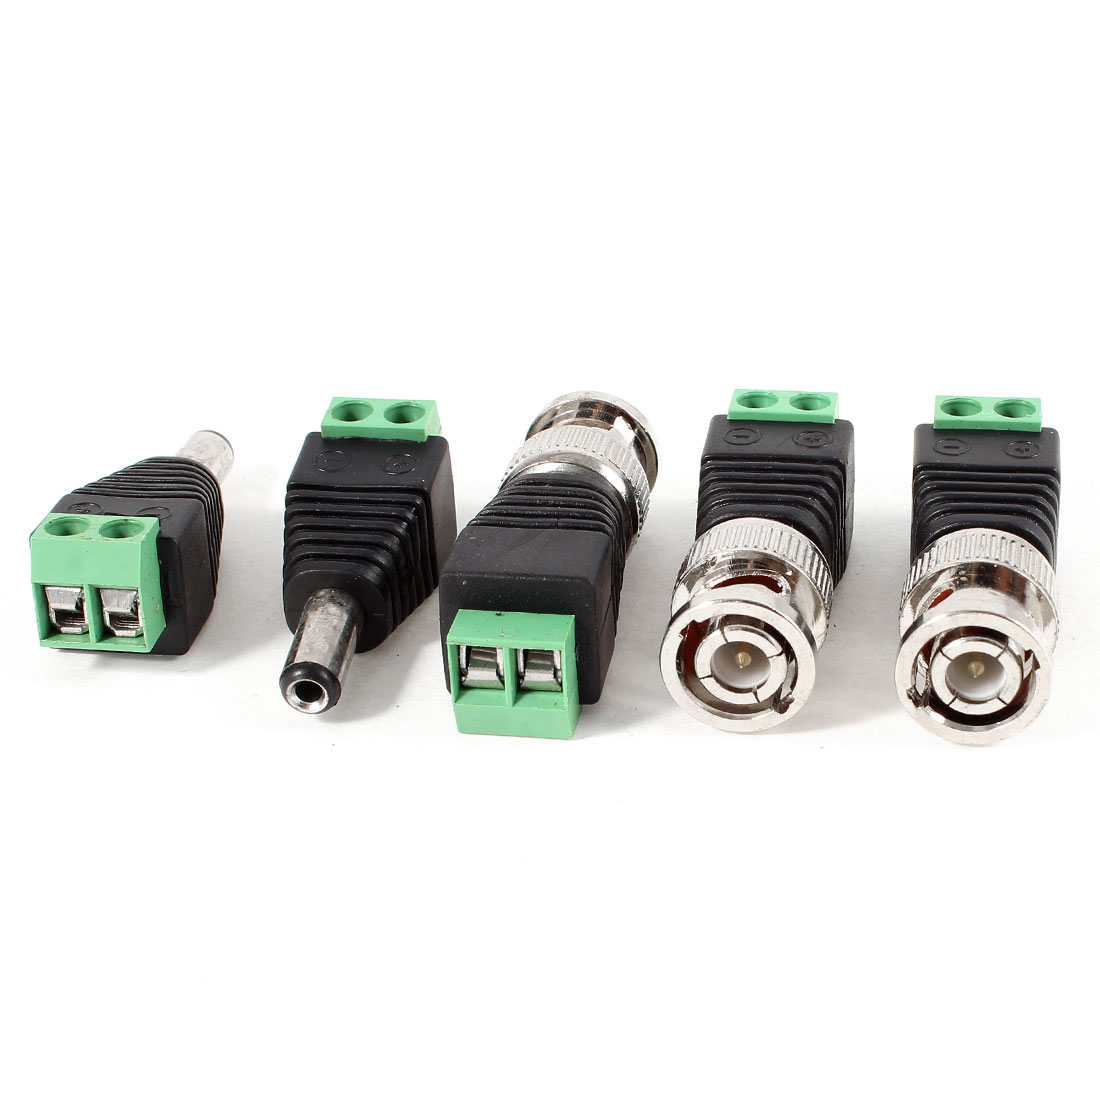 3 Pcs Coax Cat5 to BNC Male + 2 Pcs 5.5x2.1mm Male Plug DC Power CCTV Connector